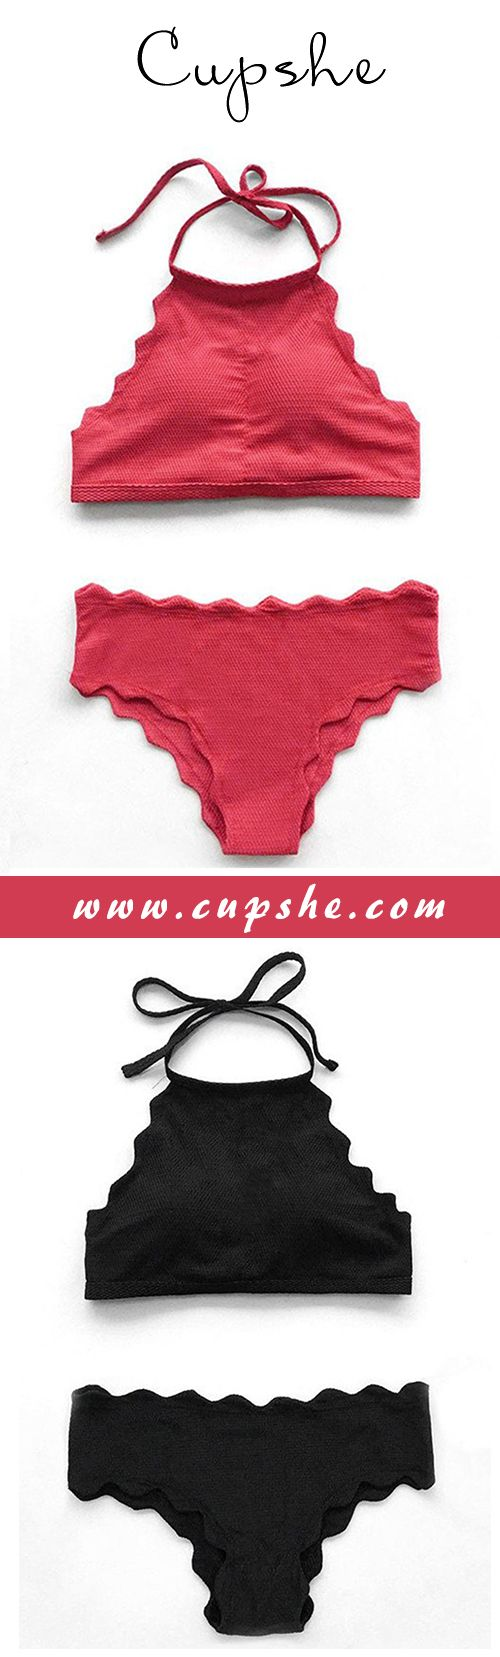 Stand out with this stunning strip bikini! $23.99 Now! Solid color and wave hem will hit any hot season. You'll surely be unforgettable with it! Find it at Cupshe.com !